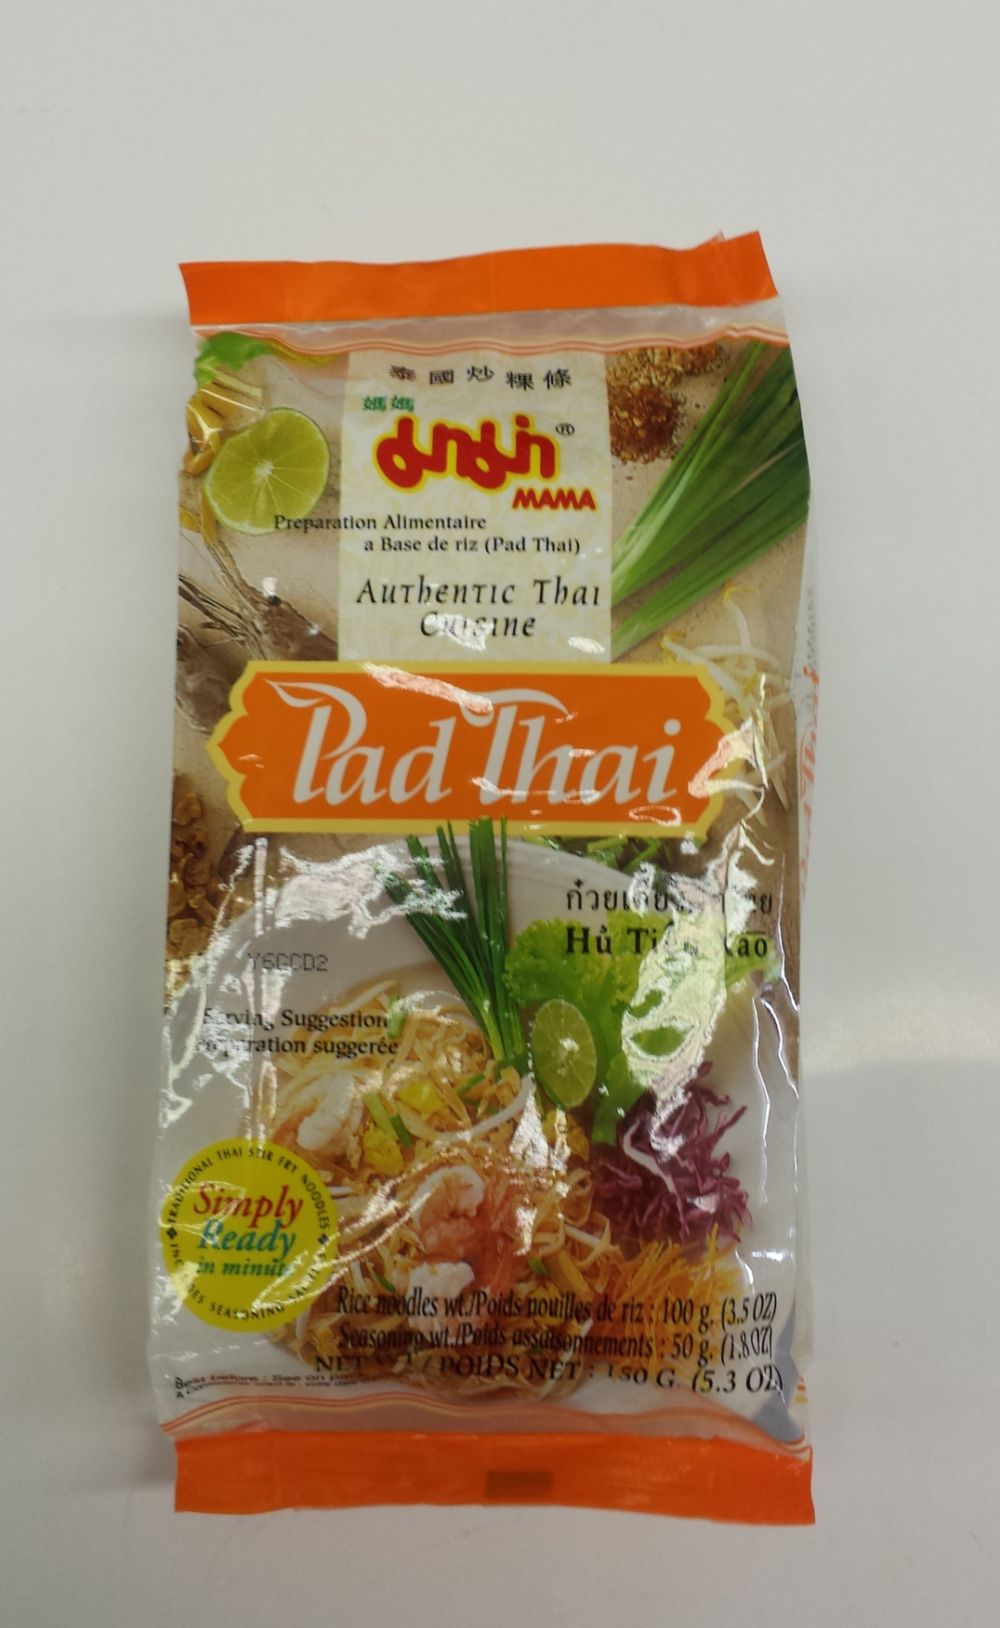 Ma Ma Pad Thai, Stir-fry   Ma Ma   ND21161 2x12x5.3 oz